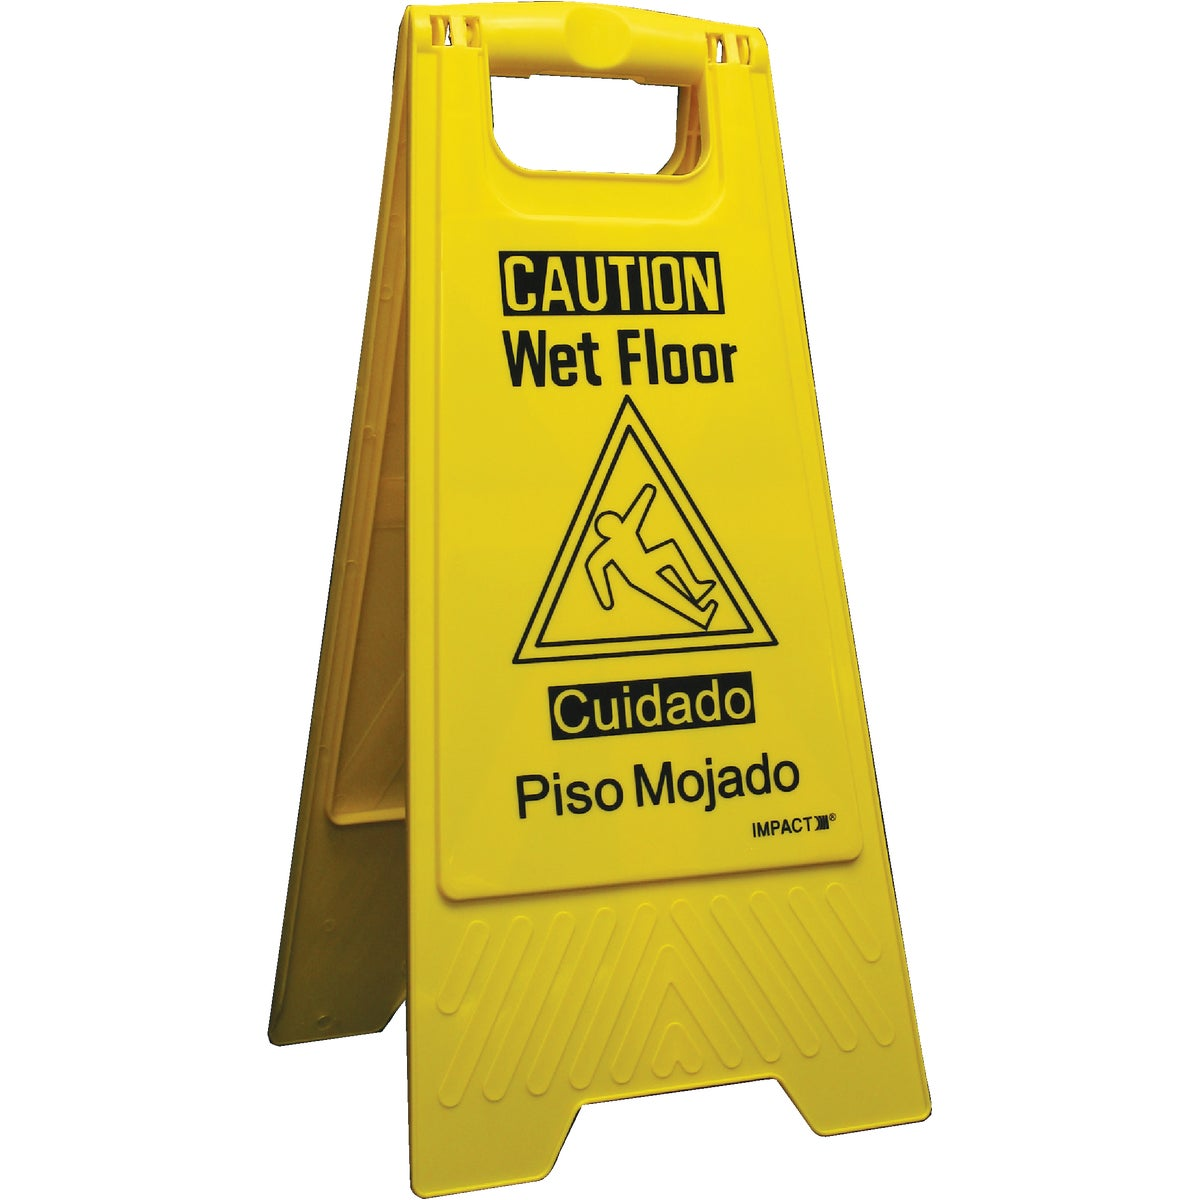 WET FLOOR SIGN - 9152W-90 by Impact Prod